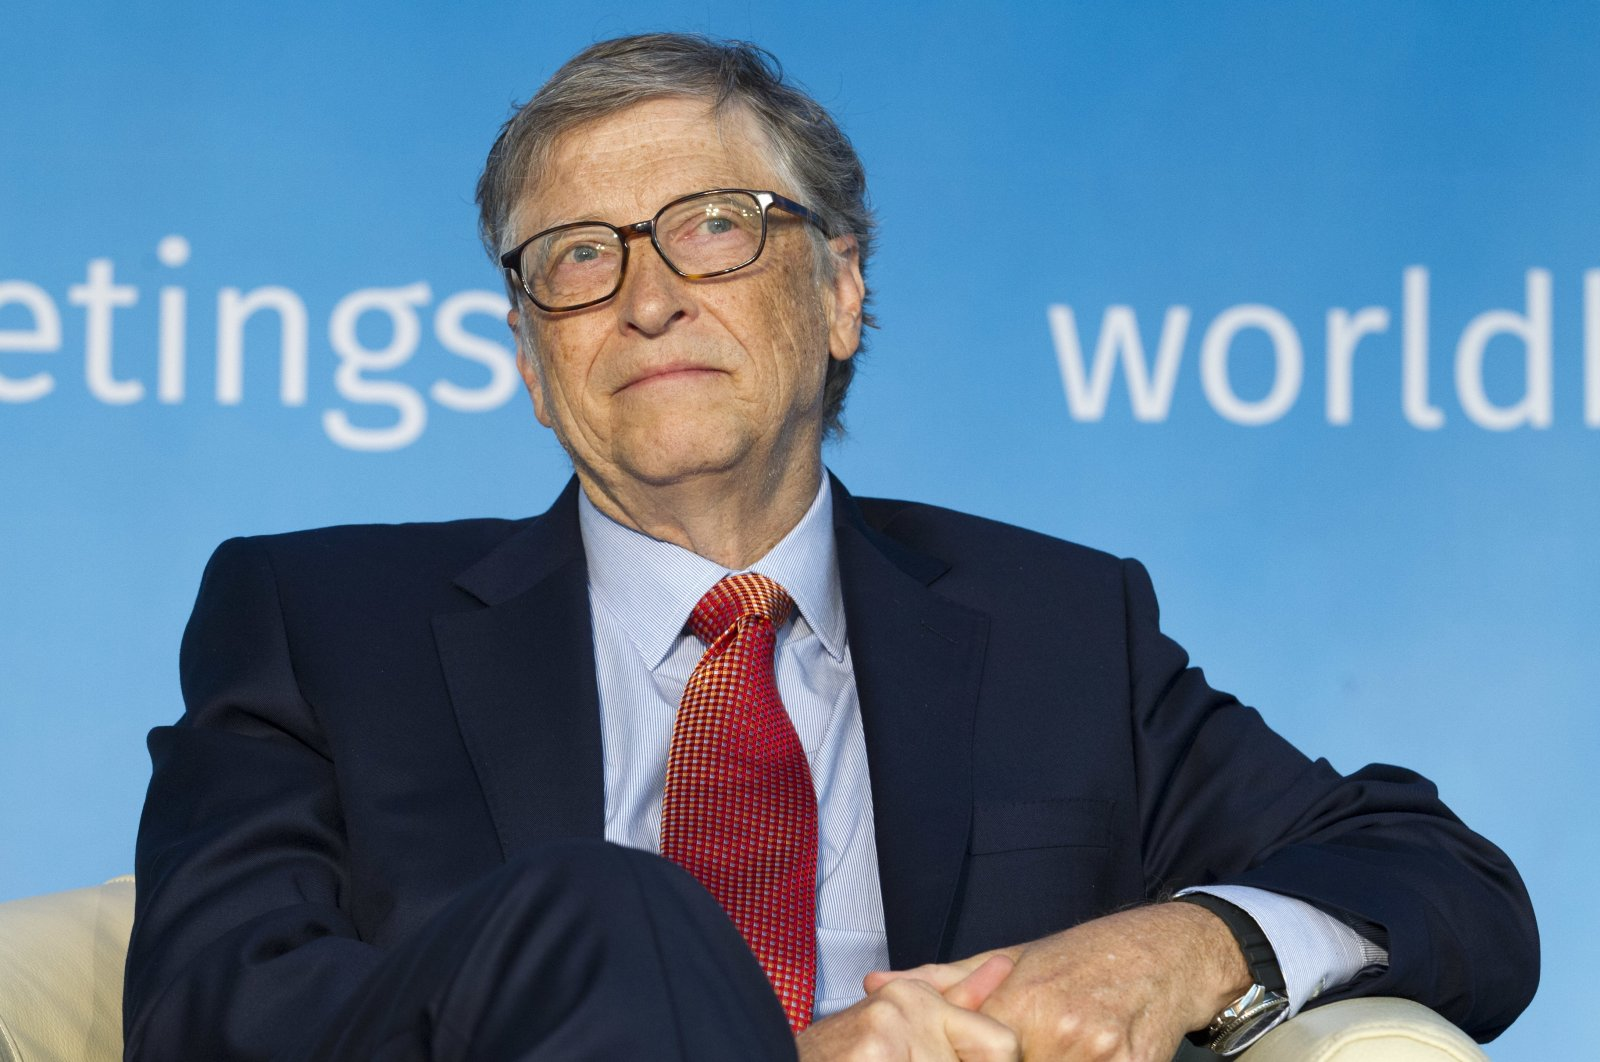 Co-chair of the Bill & Melinda Gates Foundation, Bill Gates speaks at the Building Human Capital panel in Washington, D.C., U.S., April 21, 2018. (AP Photo)